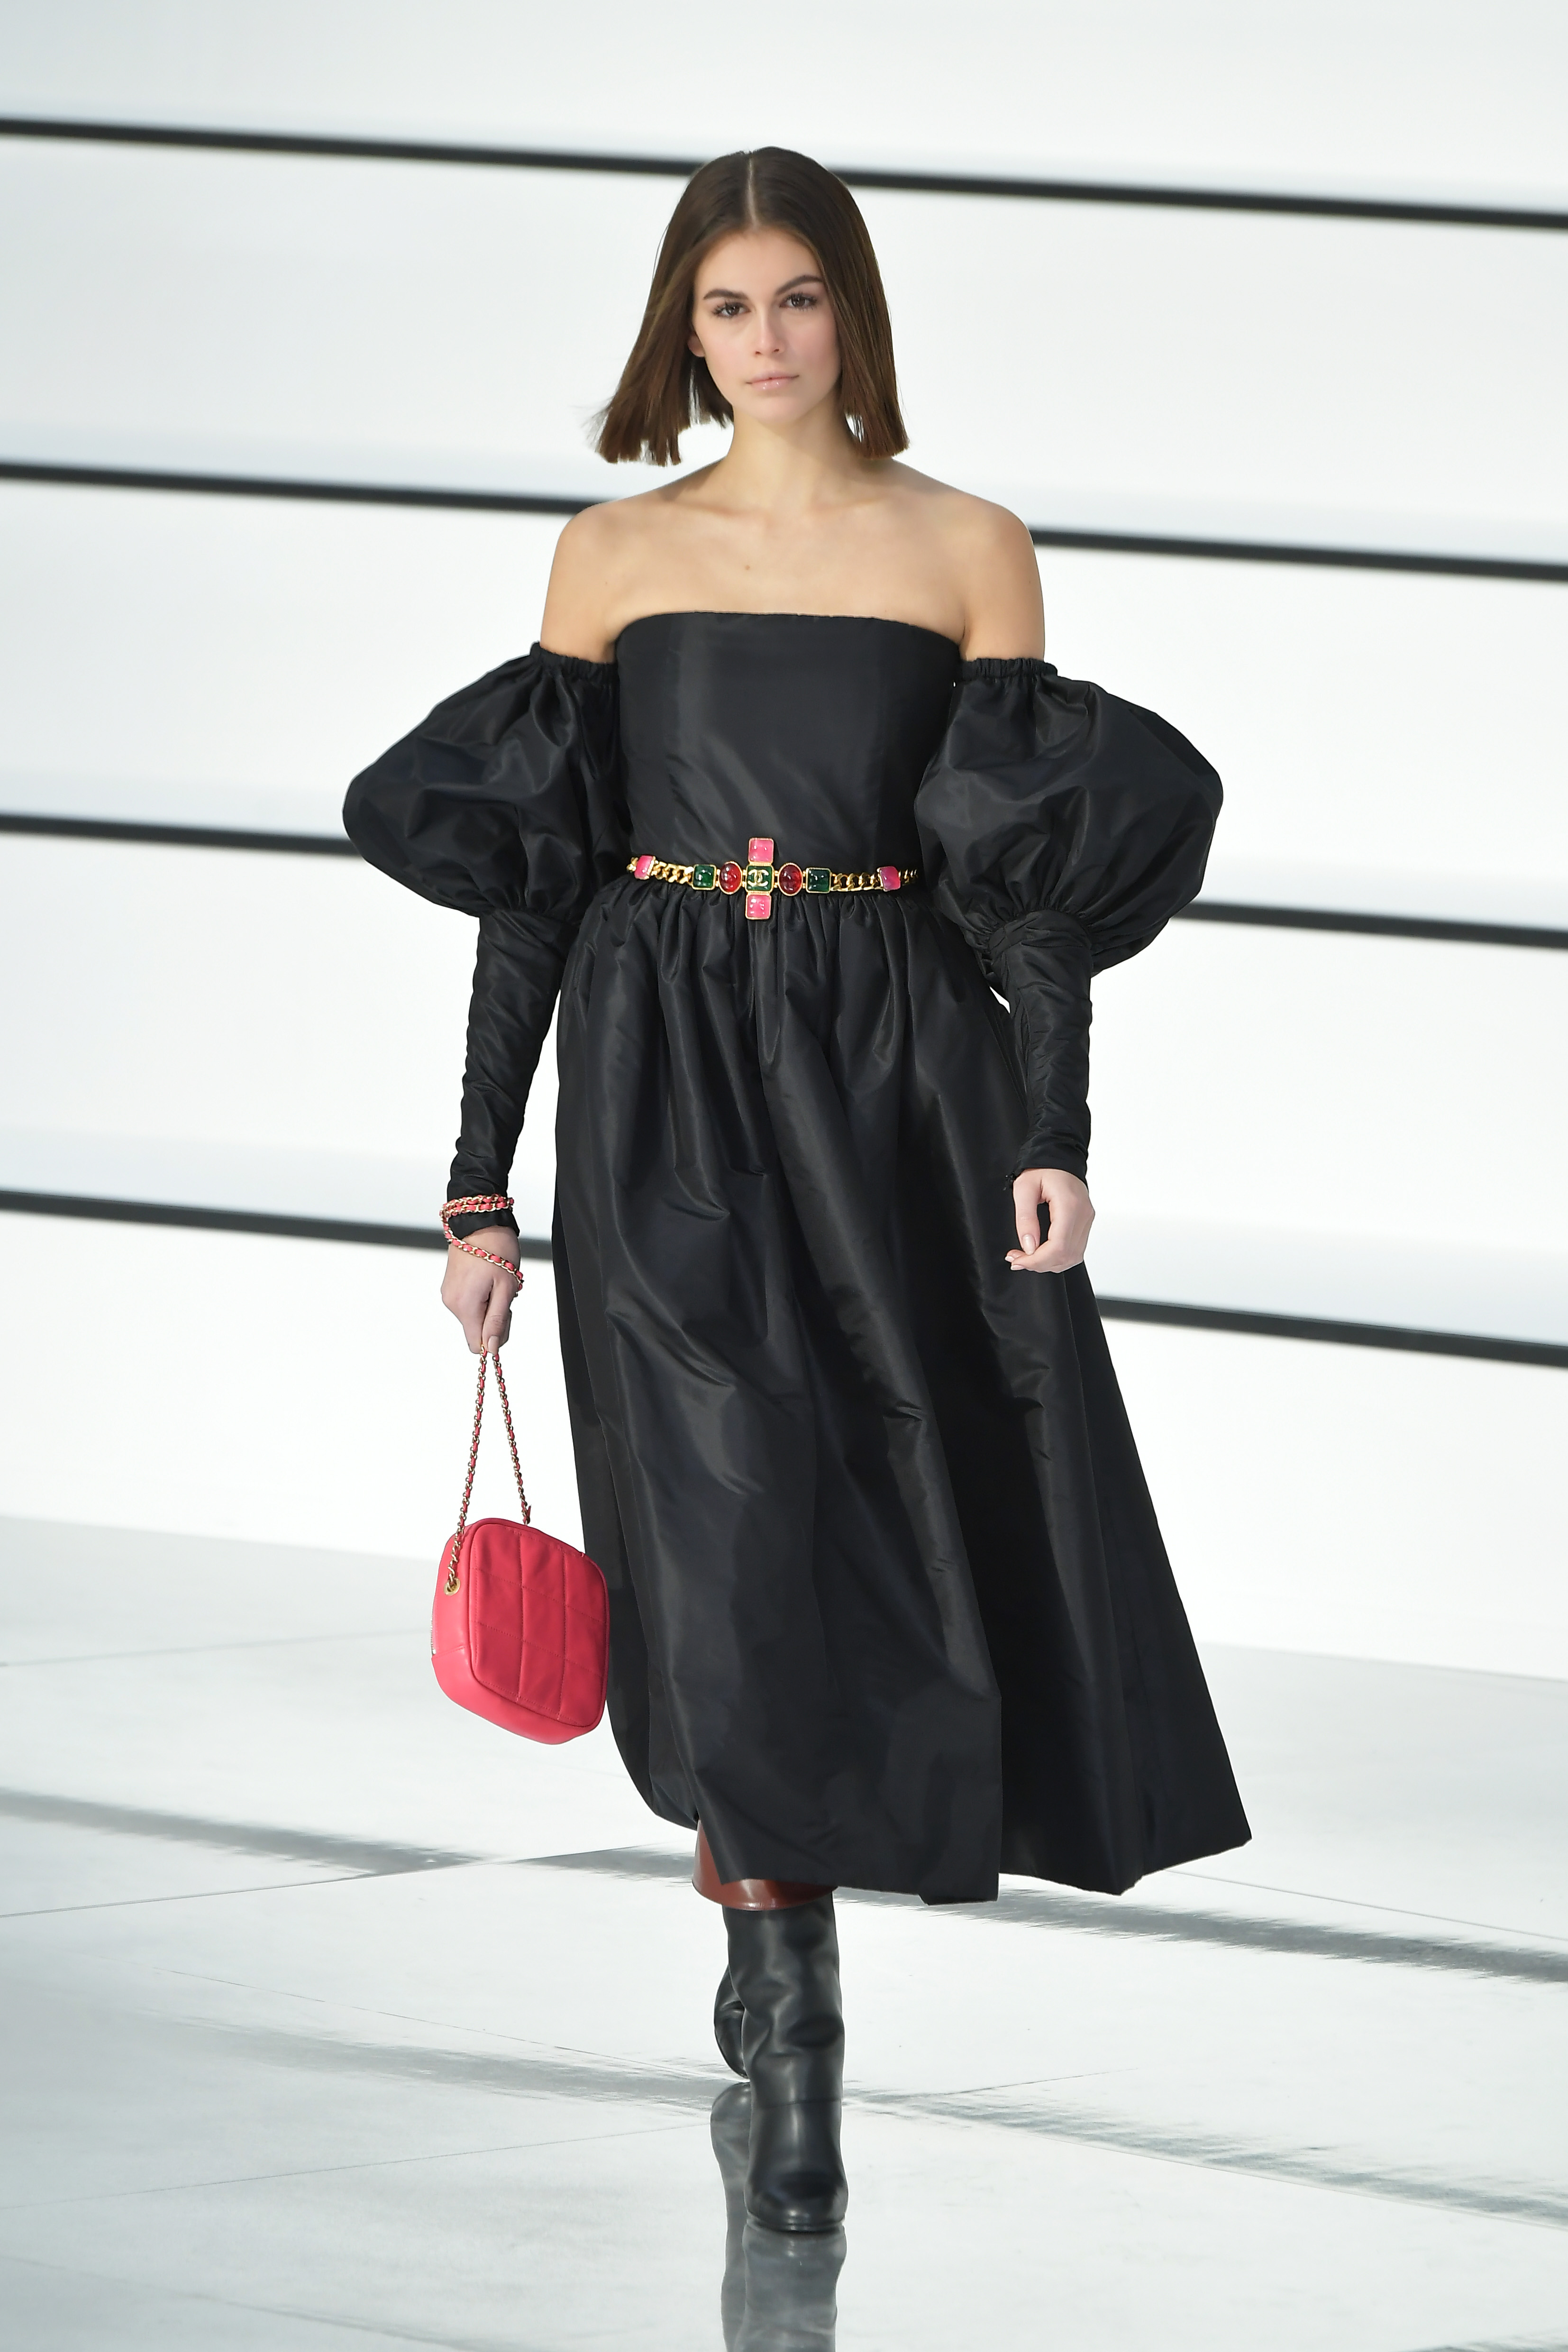 Chanel Fall Winter 2020 At Paris Fashion Week Chanel Proves Simple Doesn T Mean Boring